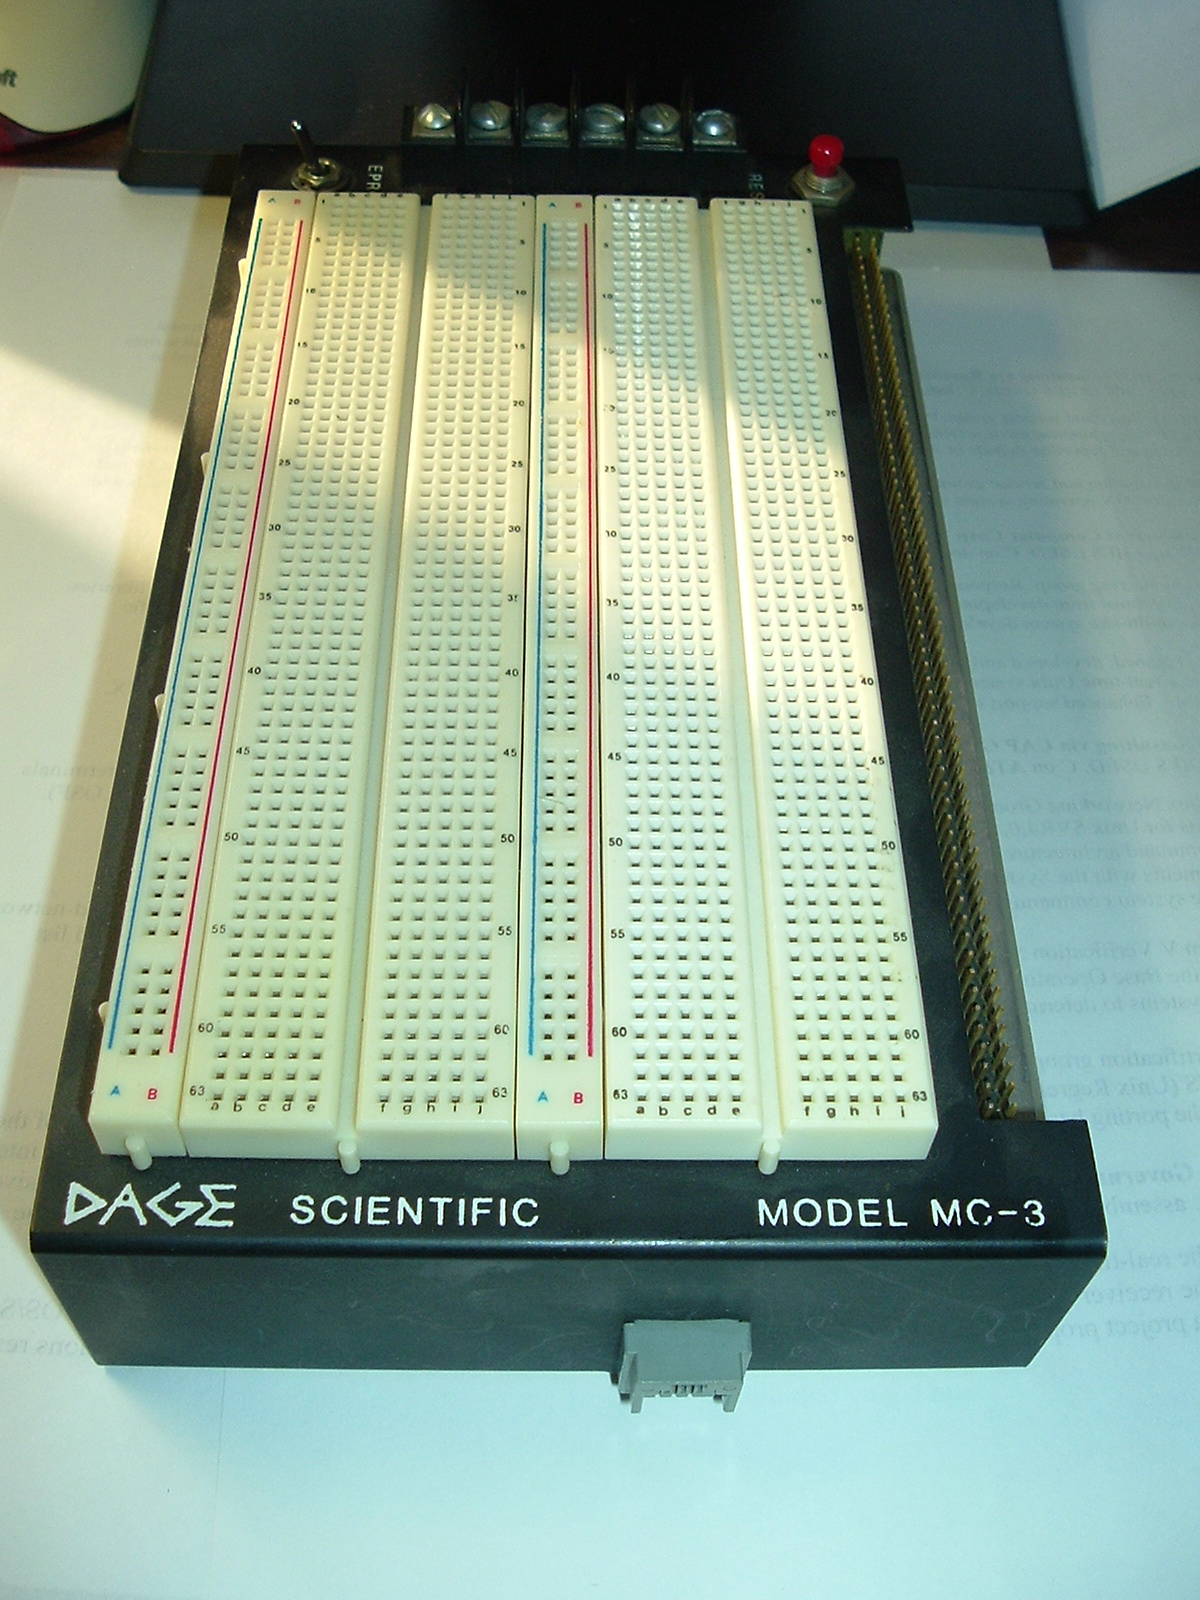 Jeff's vintage and new<br>SBC: Single Board Computers